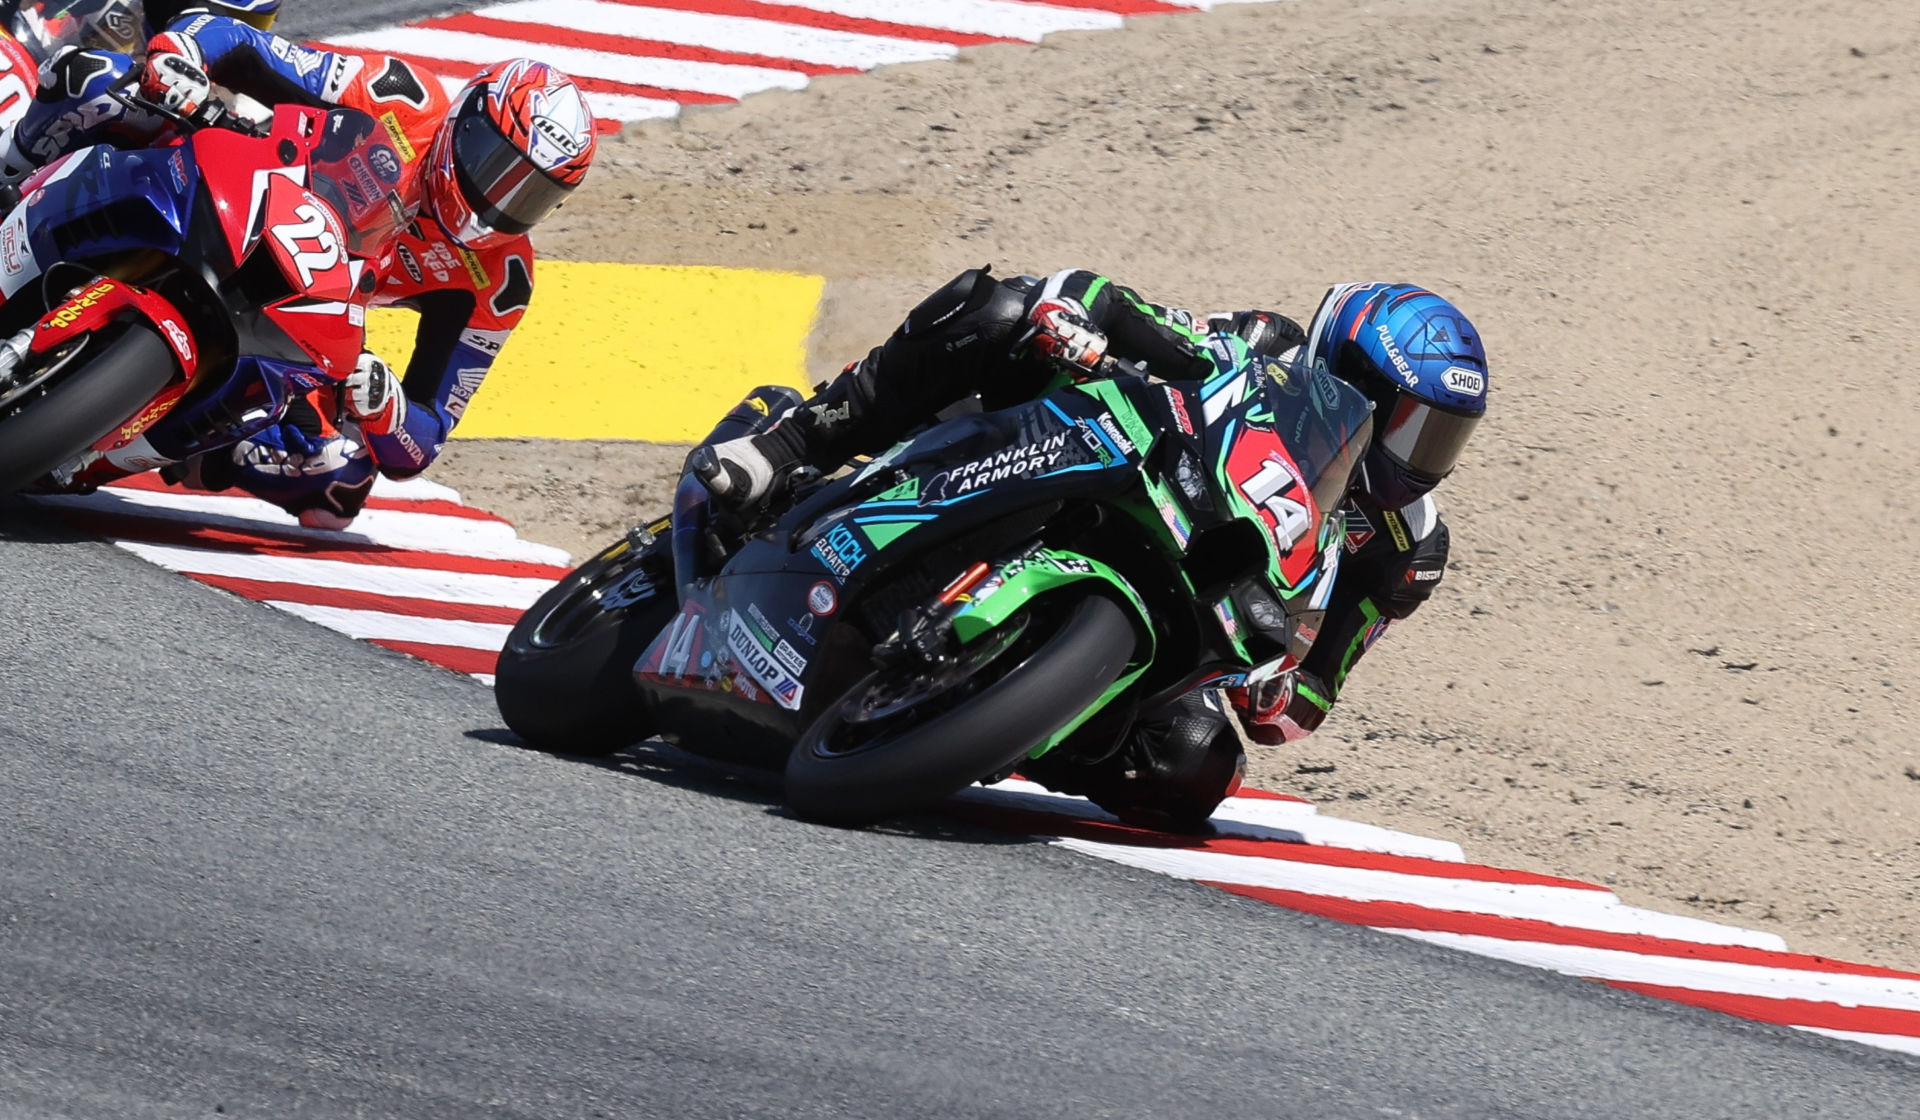 Andrew Lee (14) and Ashton Yates (22) in action at Laguna Seca. Photo by Brian J. Nelson.